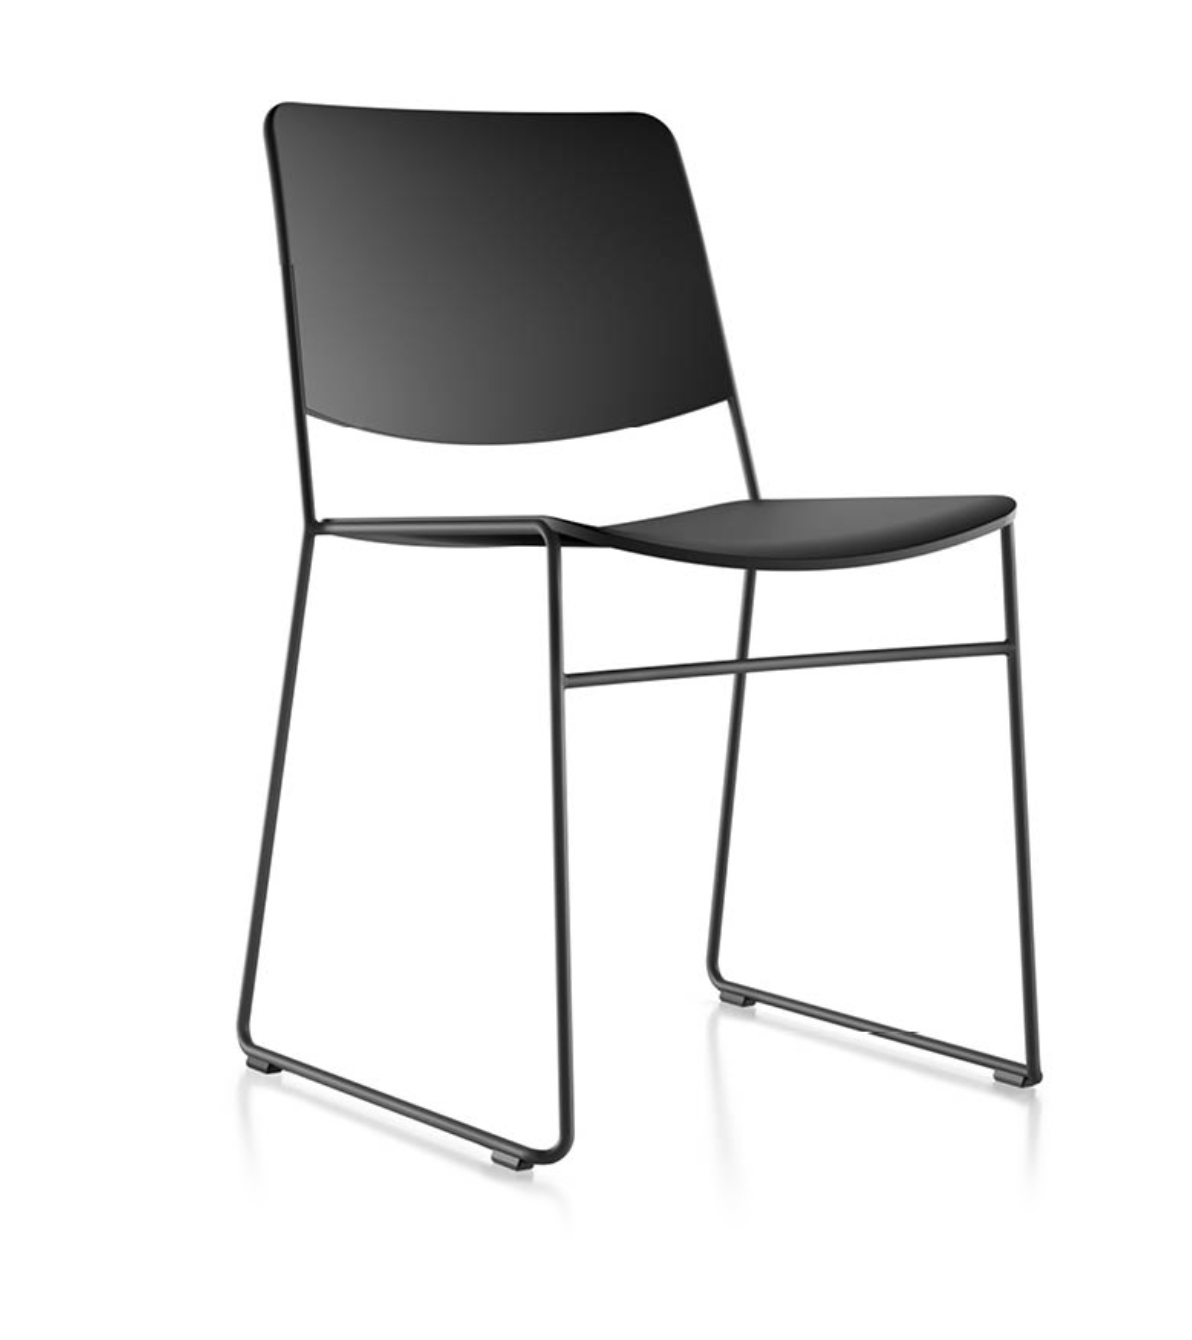 Fornasarig Chair LINK X60